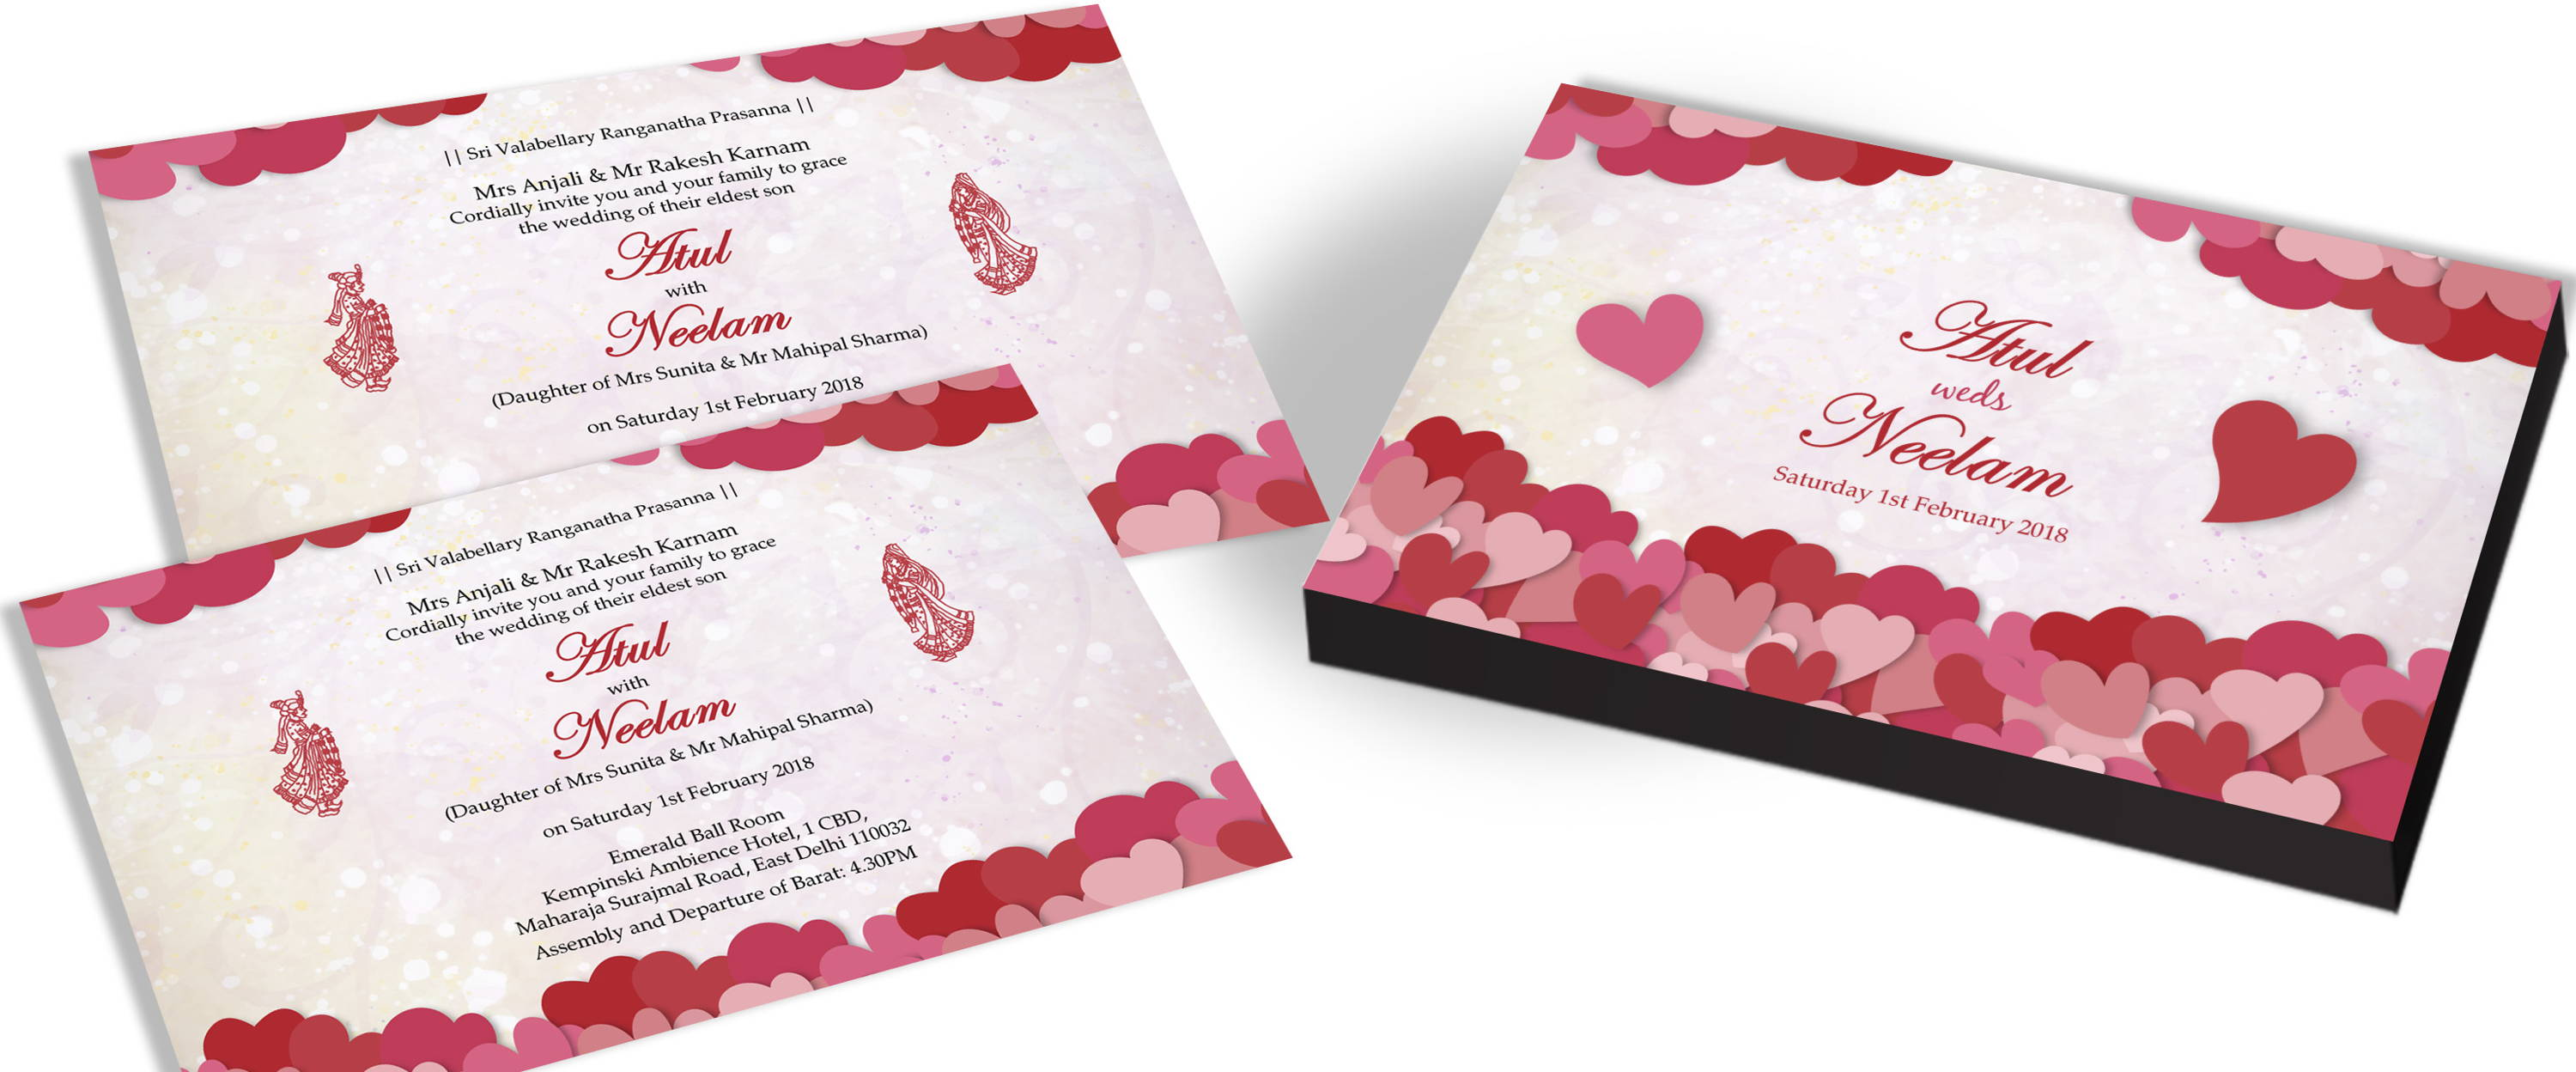 Indian Marriage Invites with Heart Theme